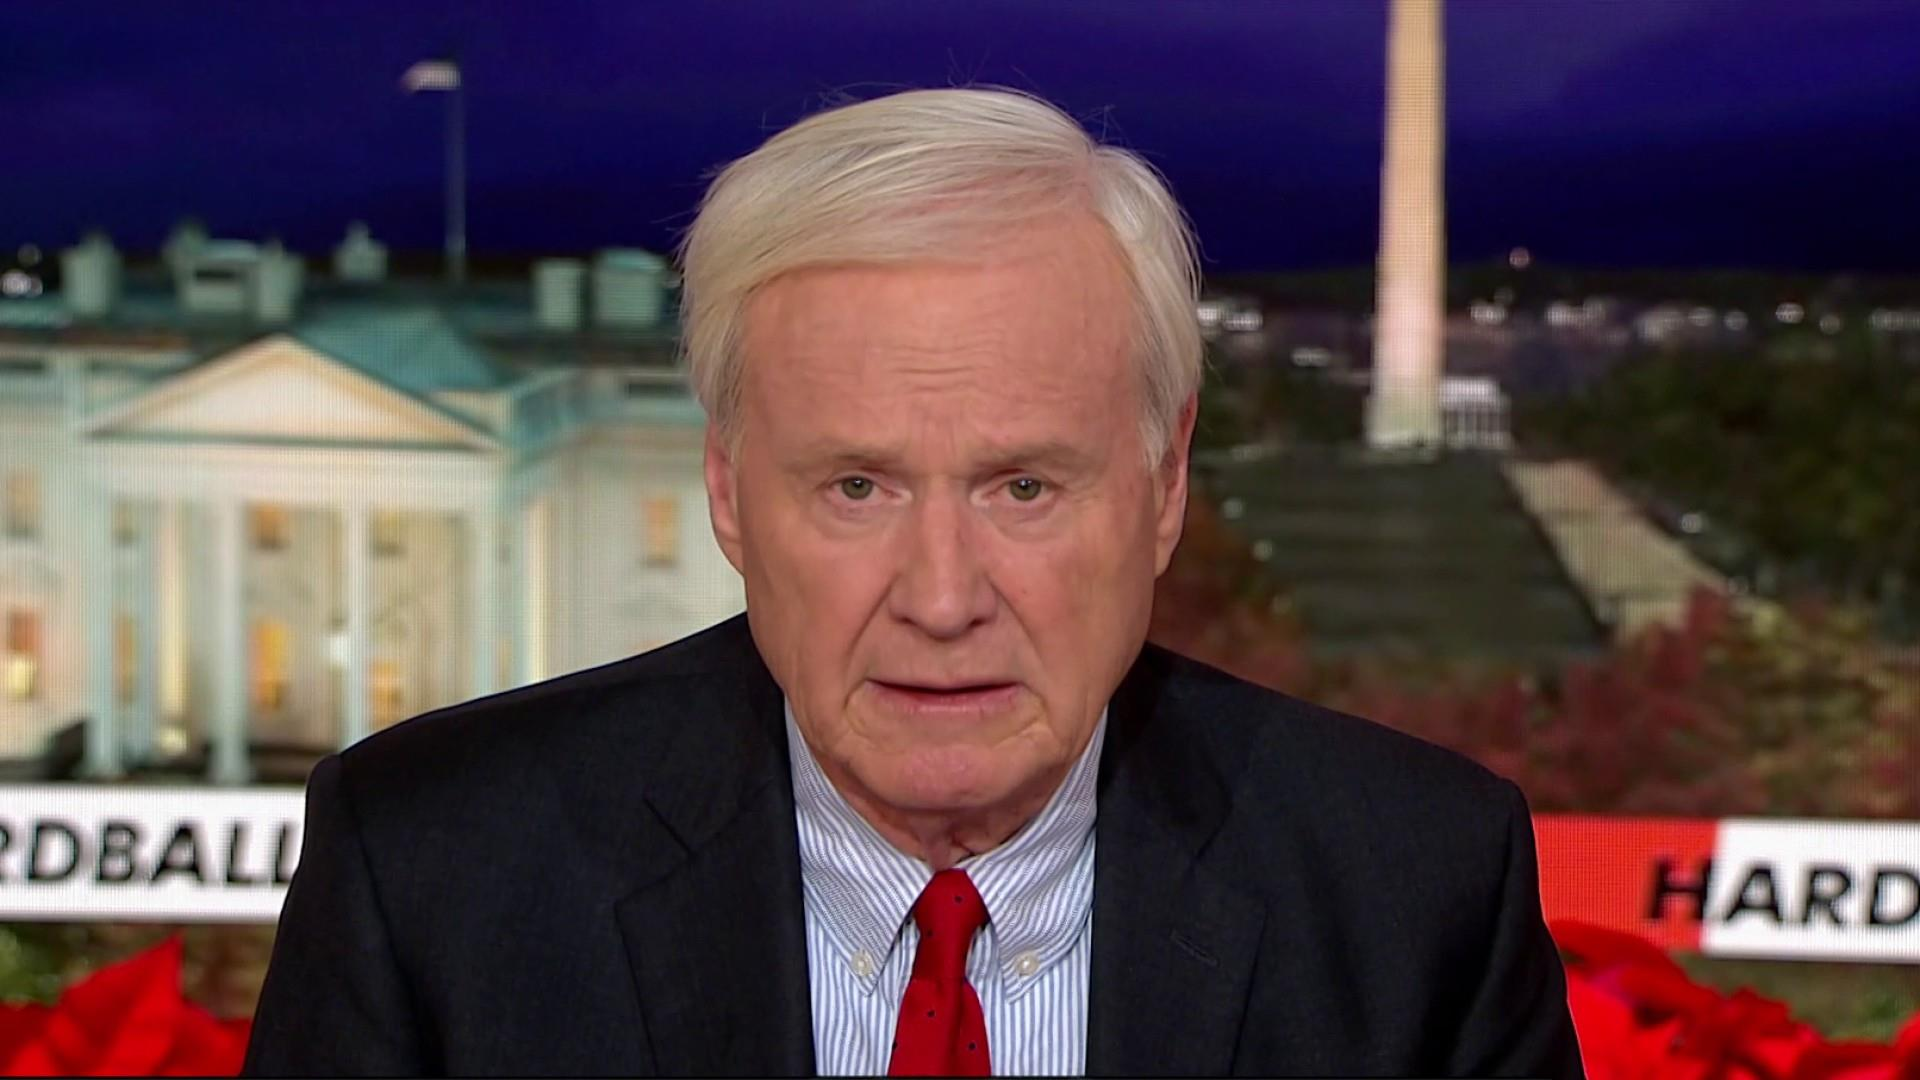 Chris Matthews on the significance of the articles of impeachment